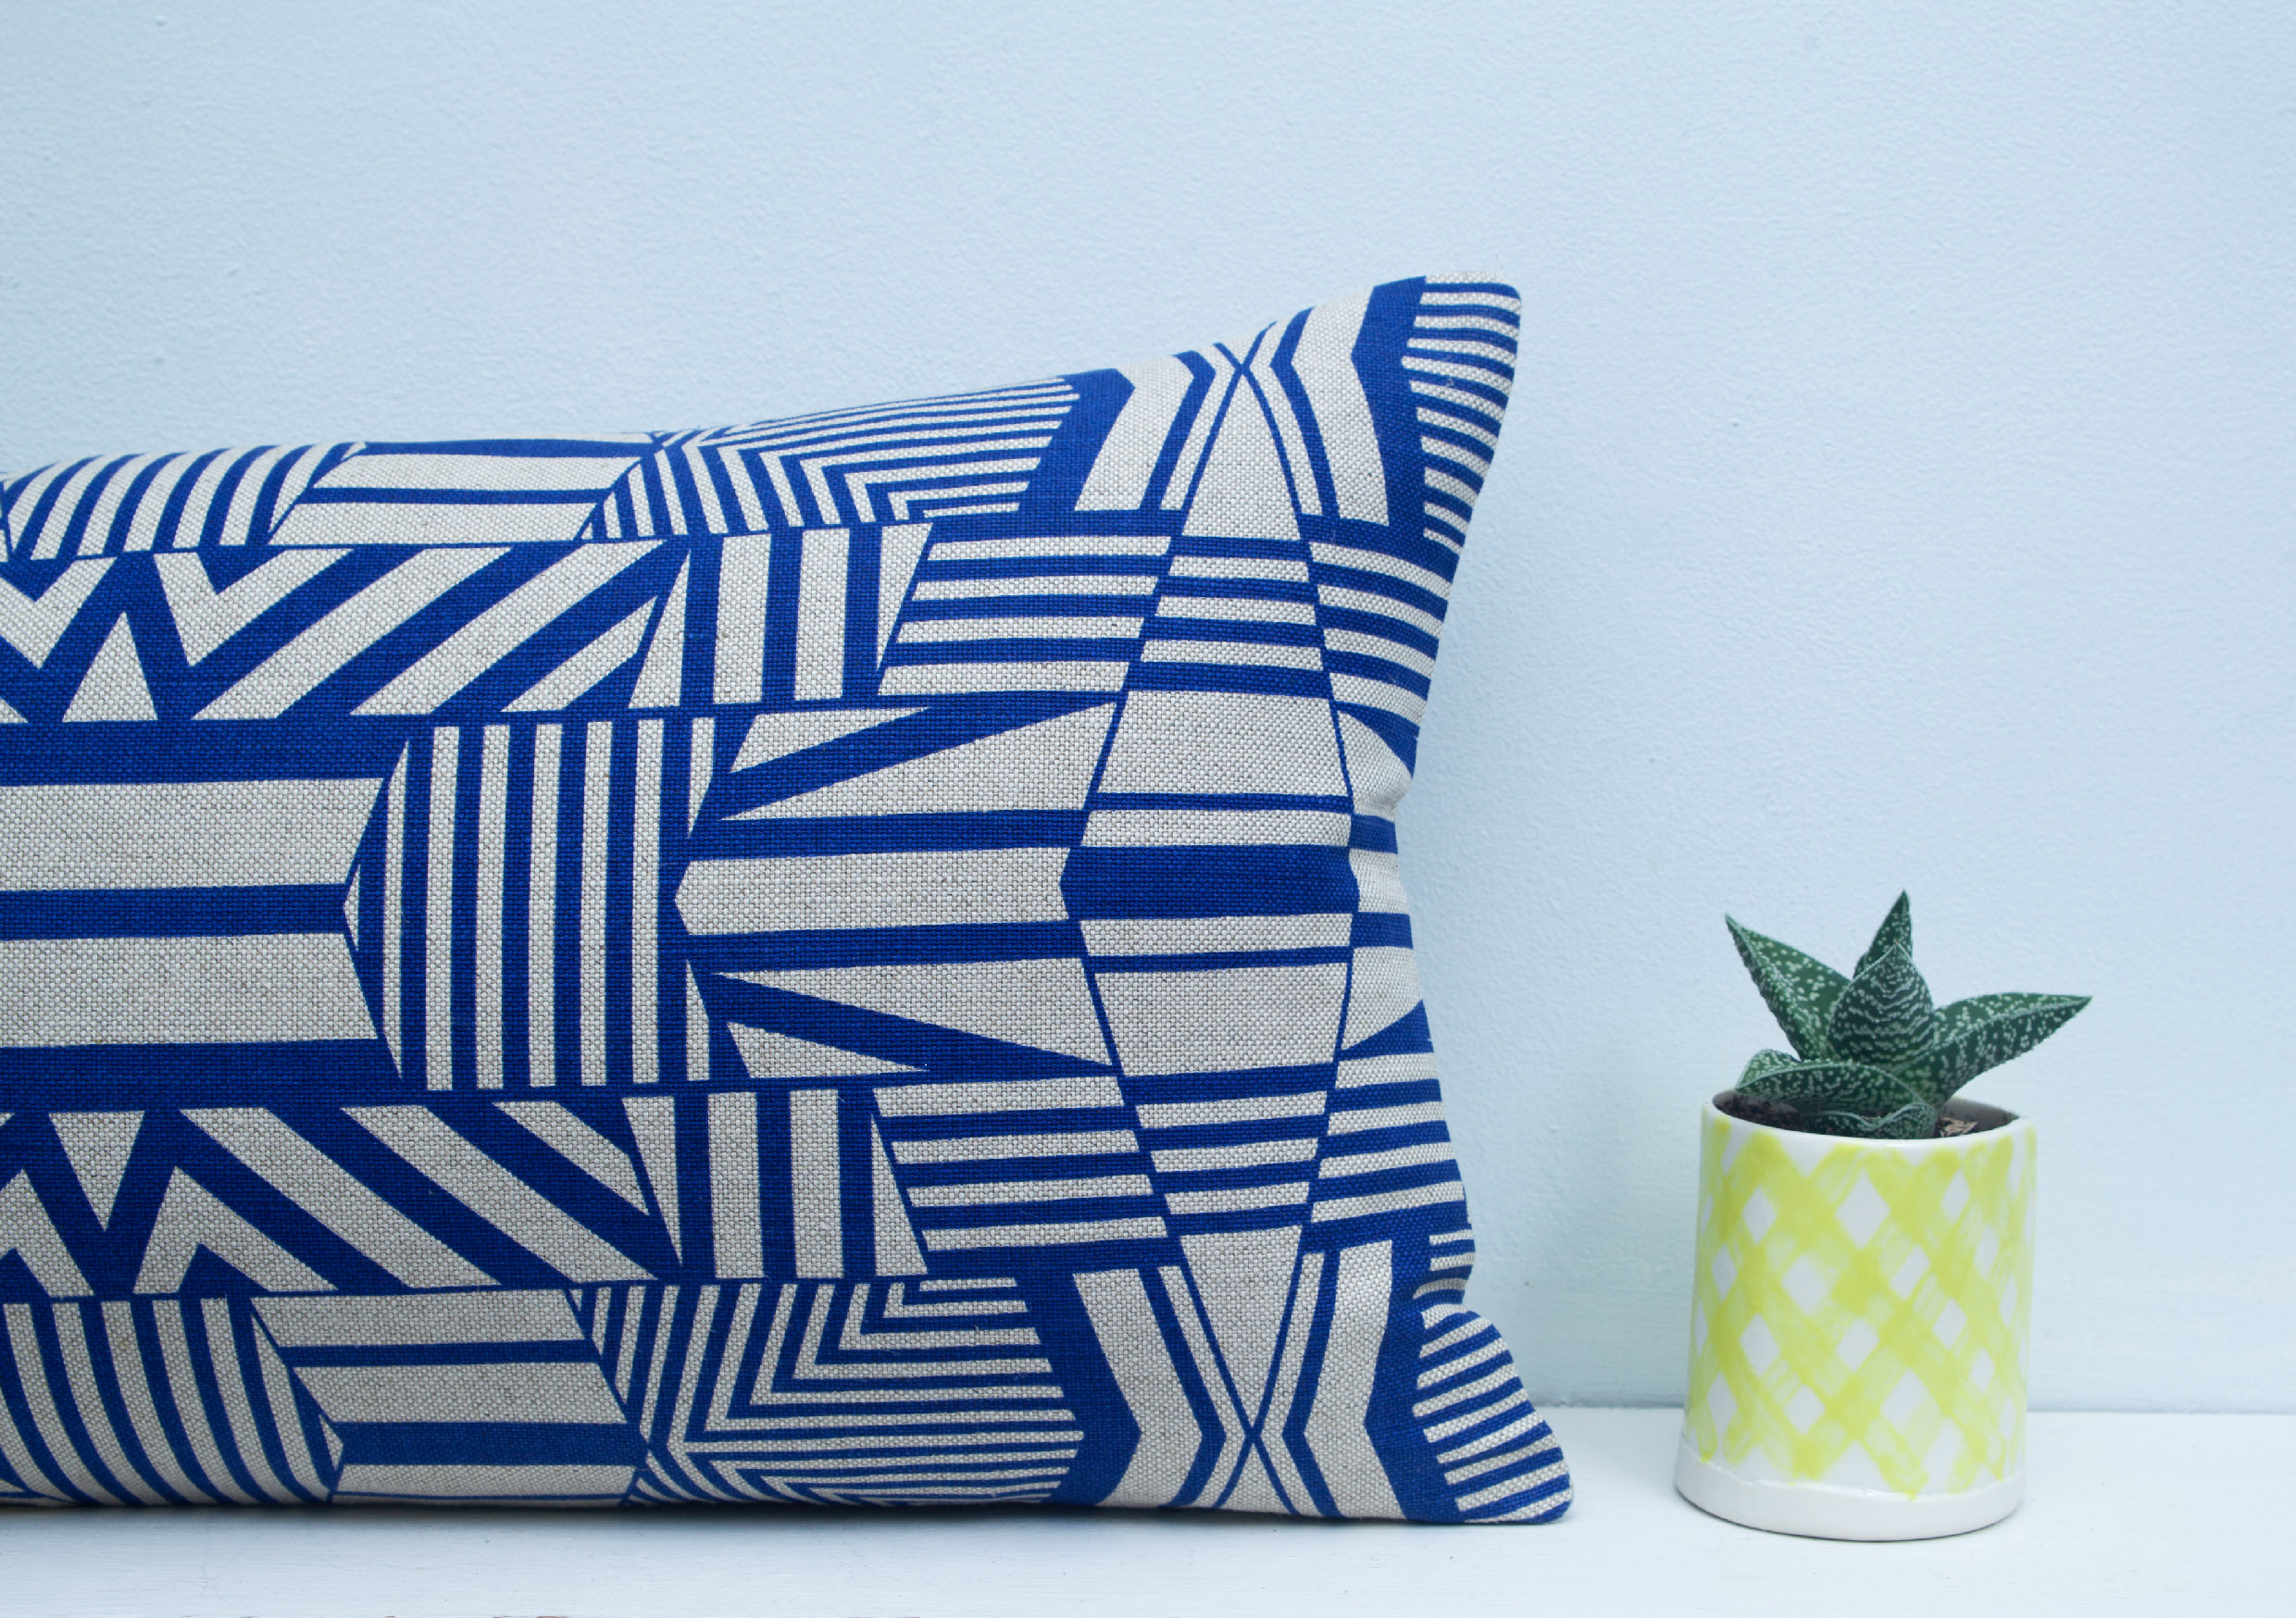 A5 Electric Blue Cushion.jpg